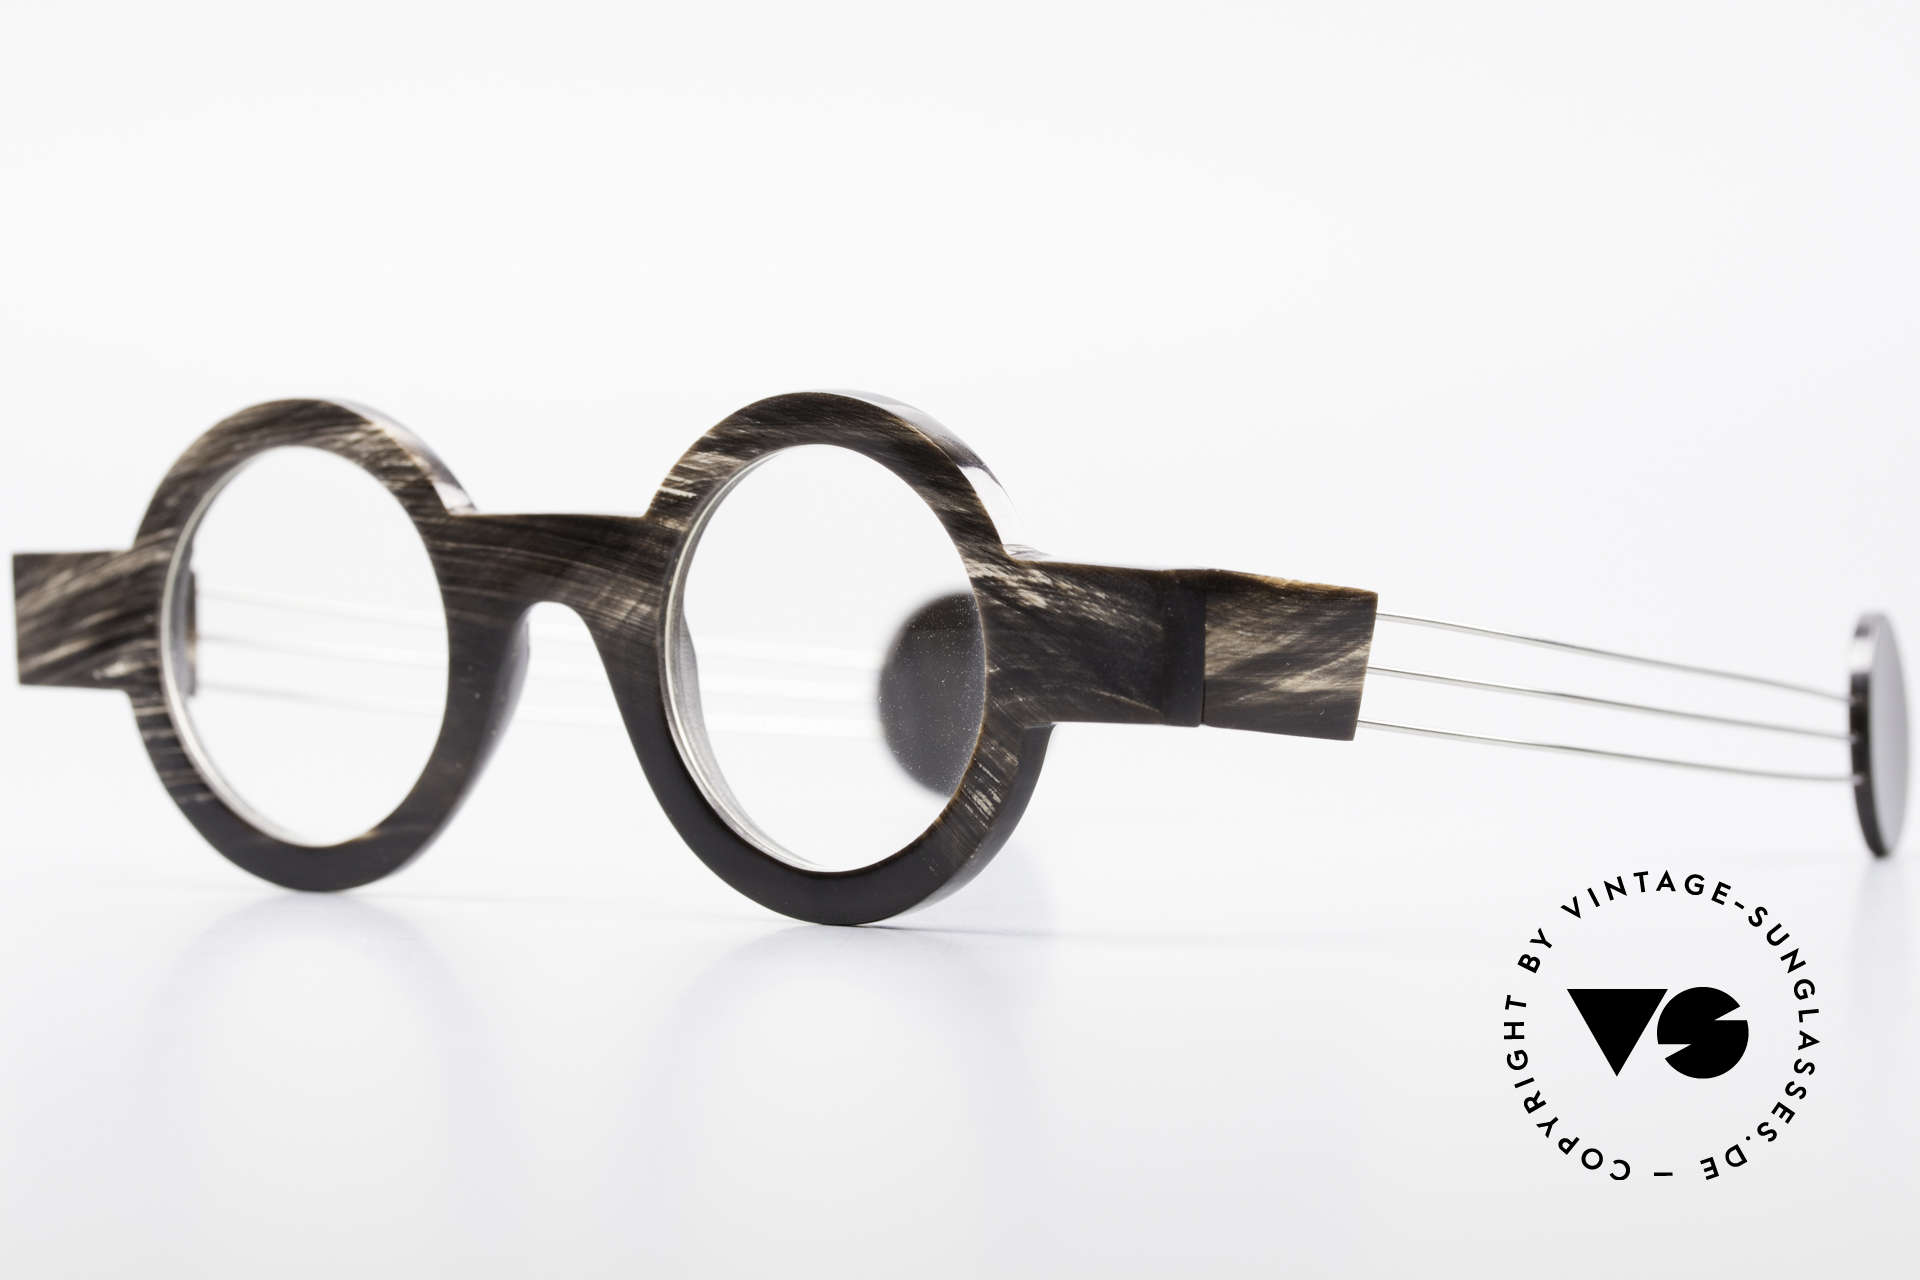 P. Klenk Bold 023 Horn Frame Twistable Temples, every horn model looks individual (pure natural material), Made for Men and Women